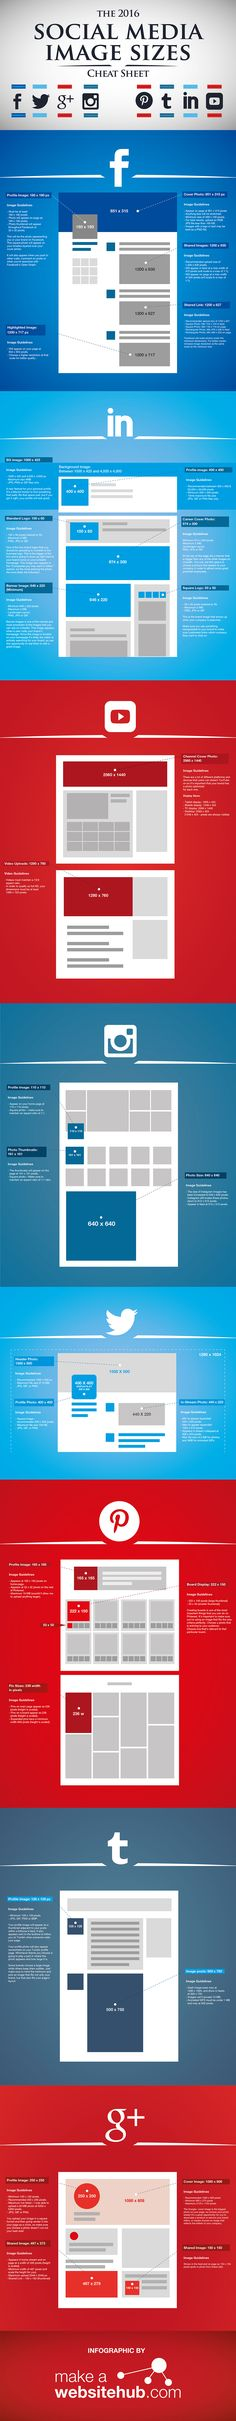 Use This Handy Infographic to Size Your Social Media Images Perfectly For 2016